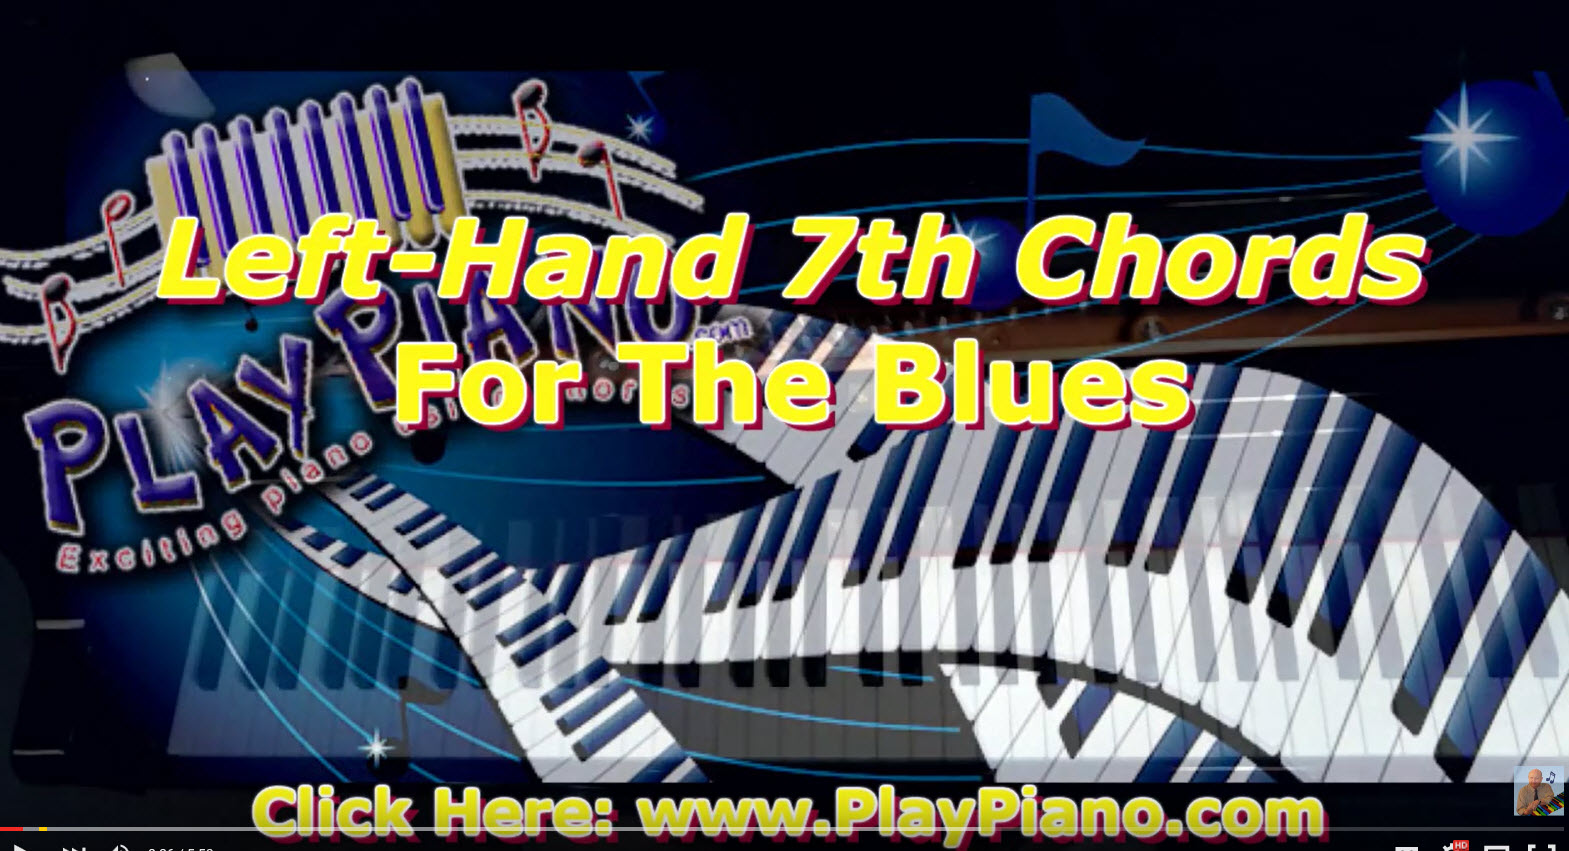 Left hand 7th chords when playing the blues piano lessons for adults left hand 7th chords when playing the blues hexwebz Image collections